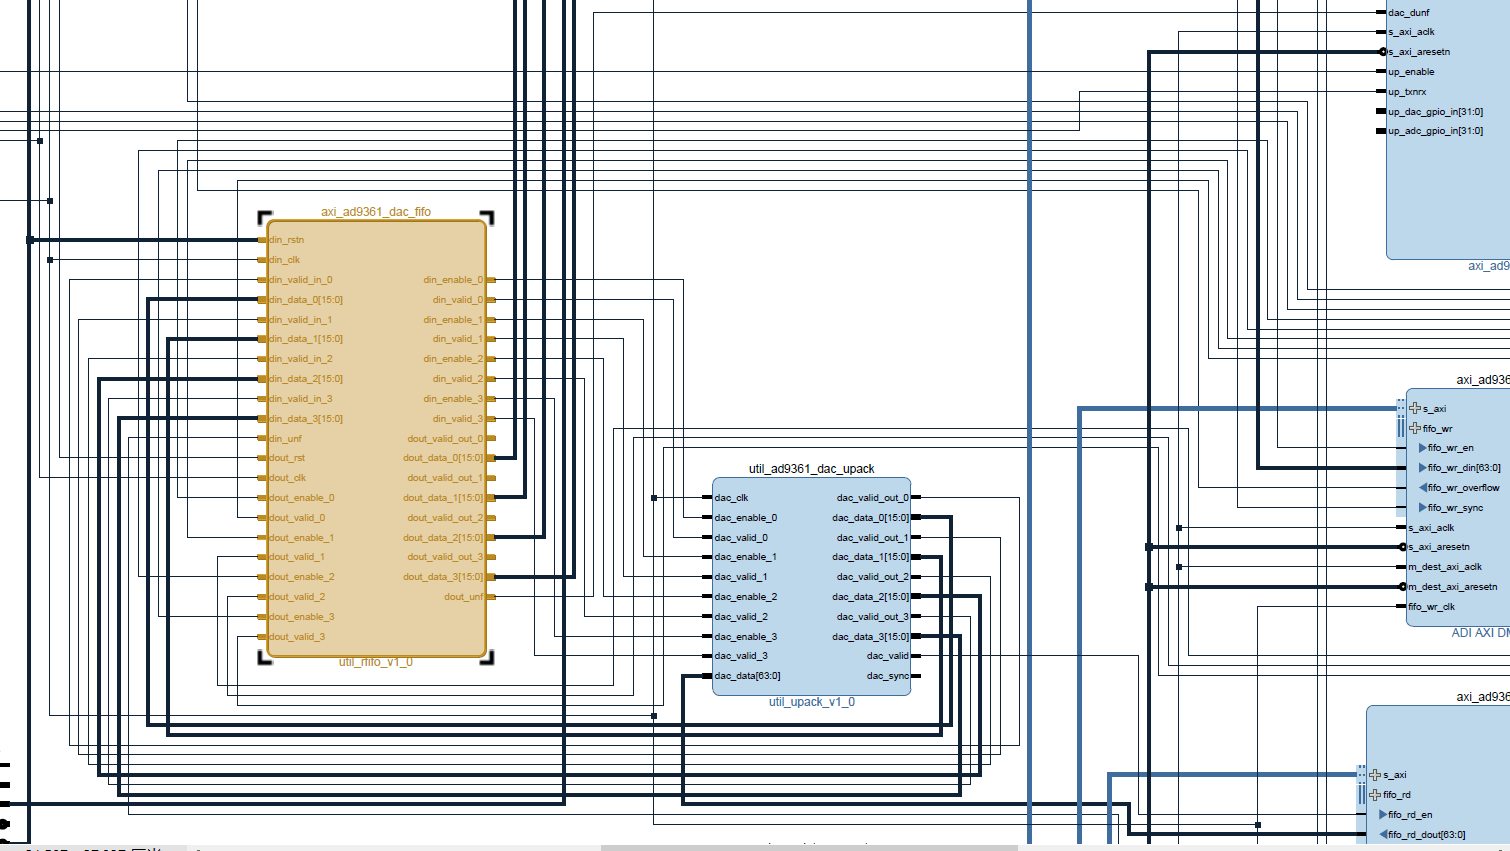 hight resolution of  and gotten the block design diagram which is in the attachment what i want to ask is which ports can be connected with my modulated i and q signals